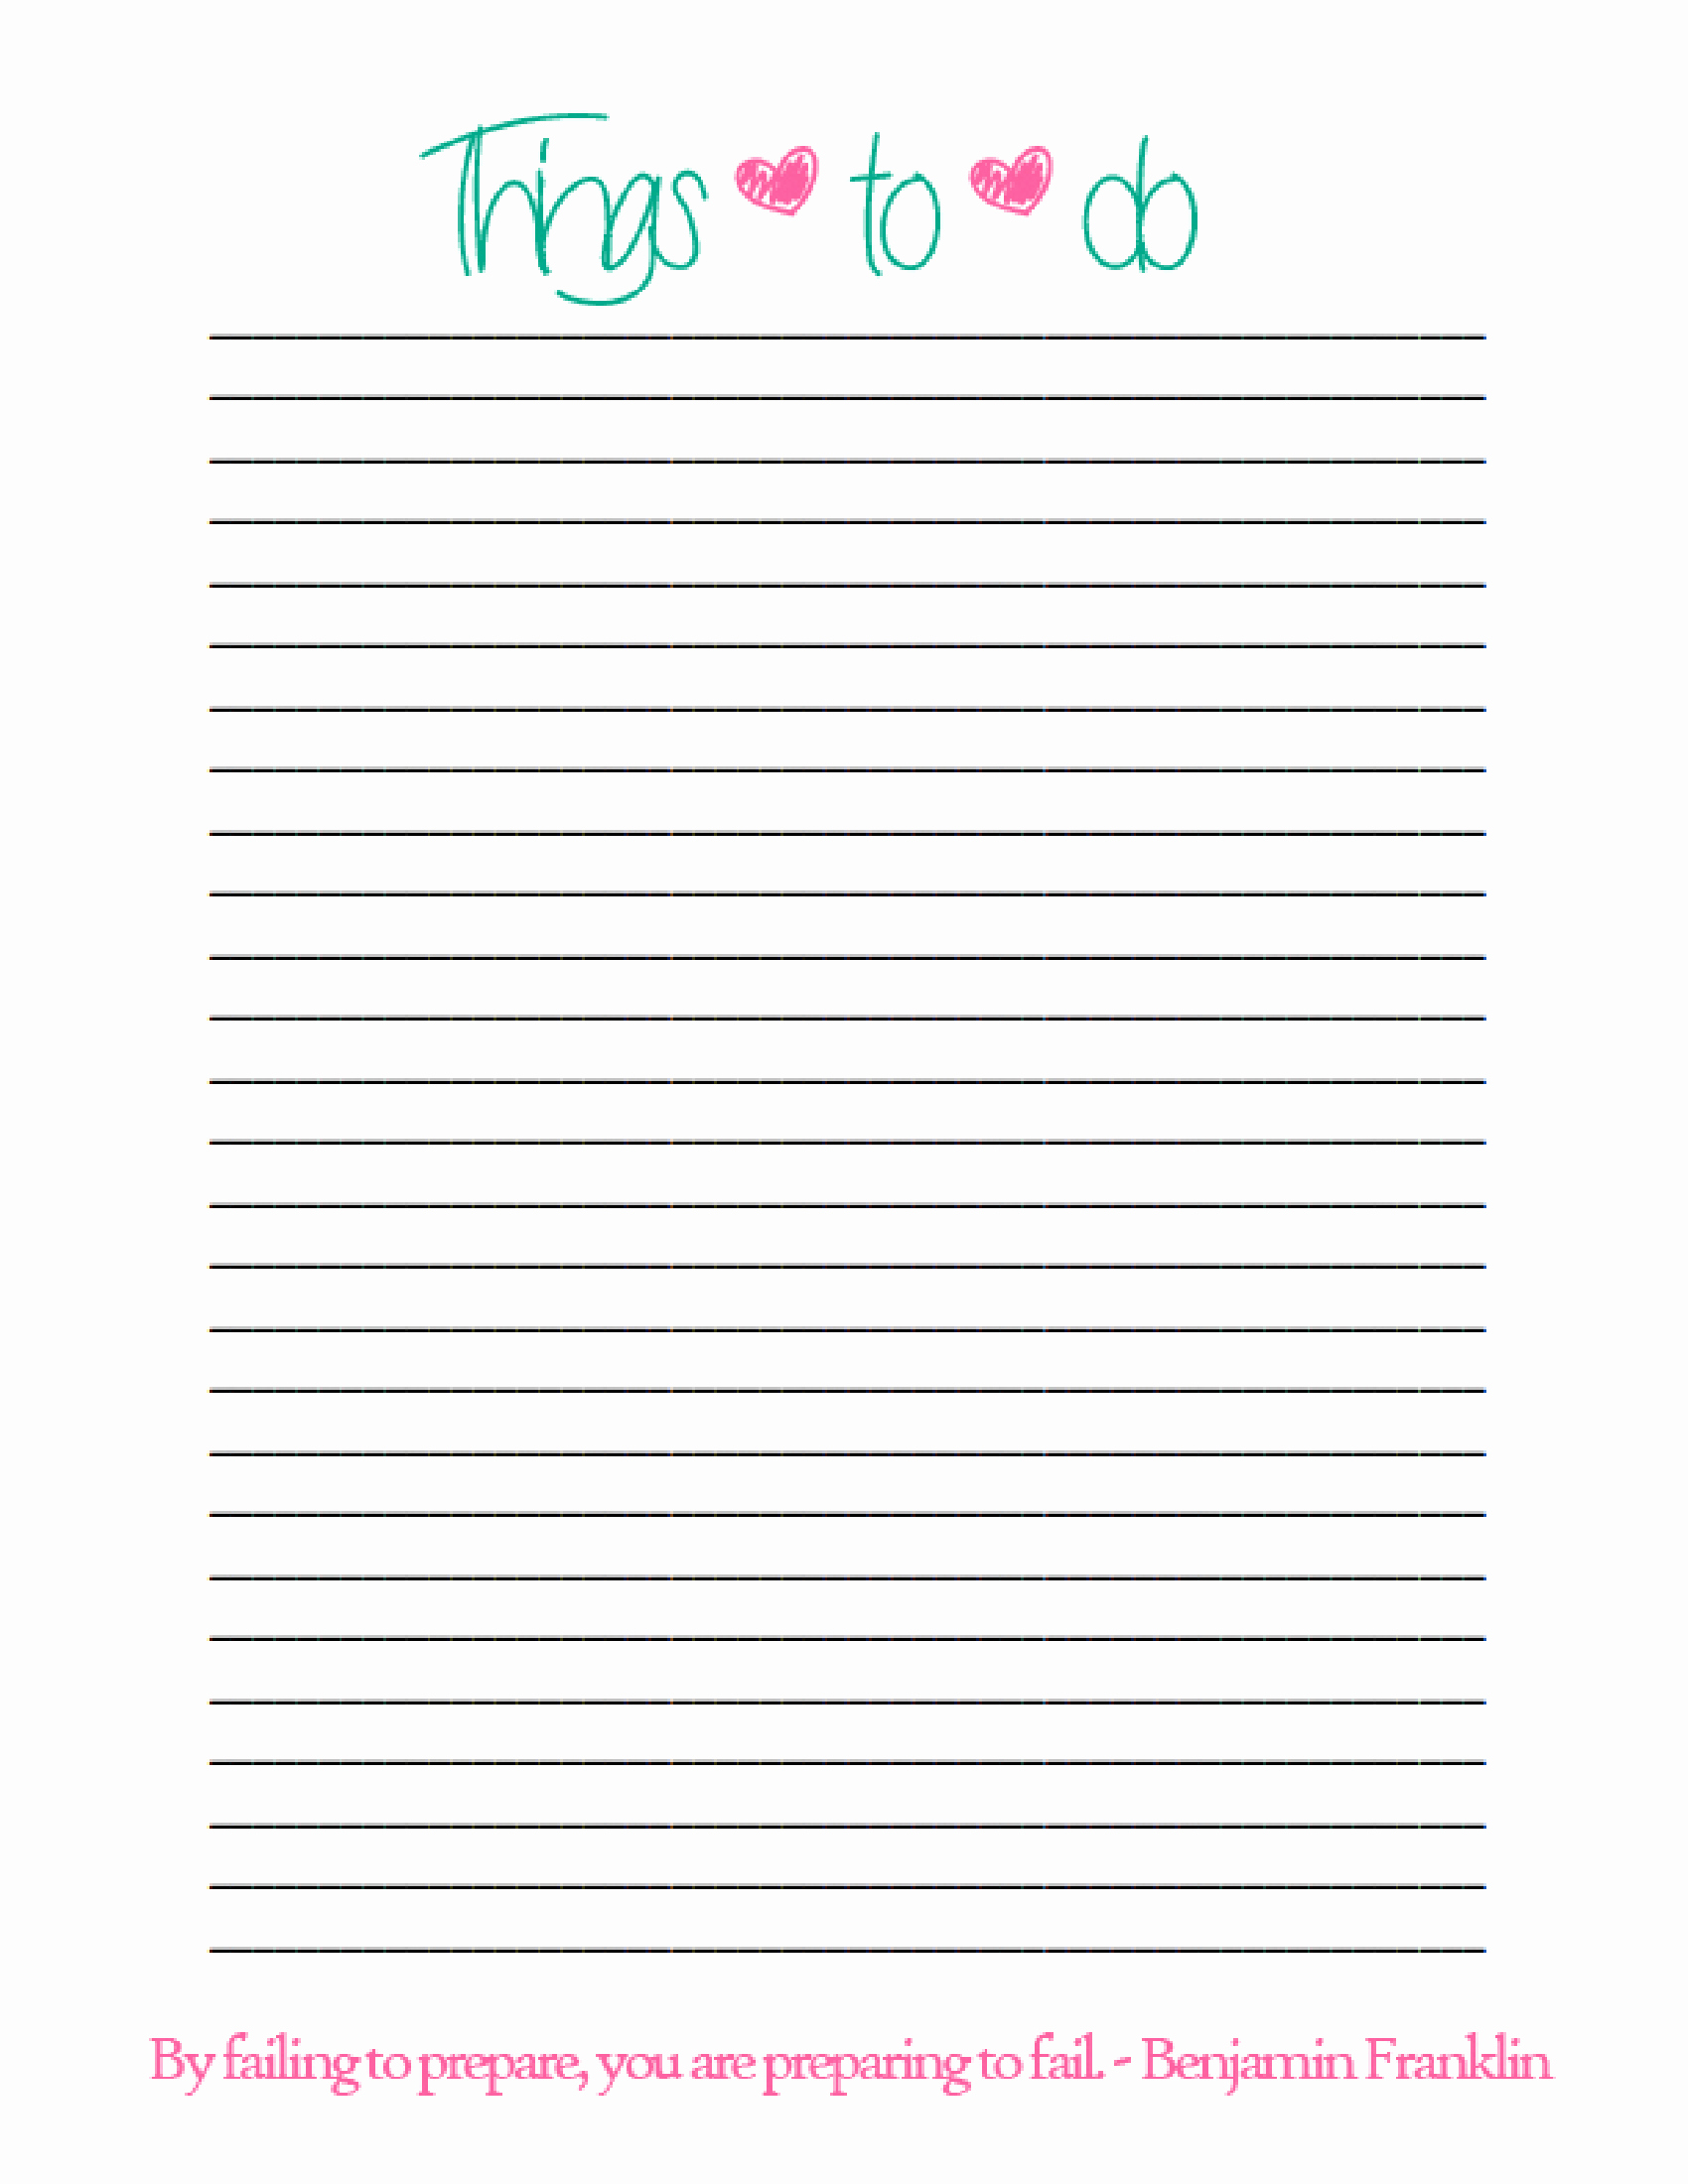 Things to Do Lists Template Beautiful Simple Things to Do List Pdf Favorite Quotes